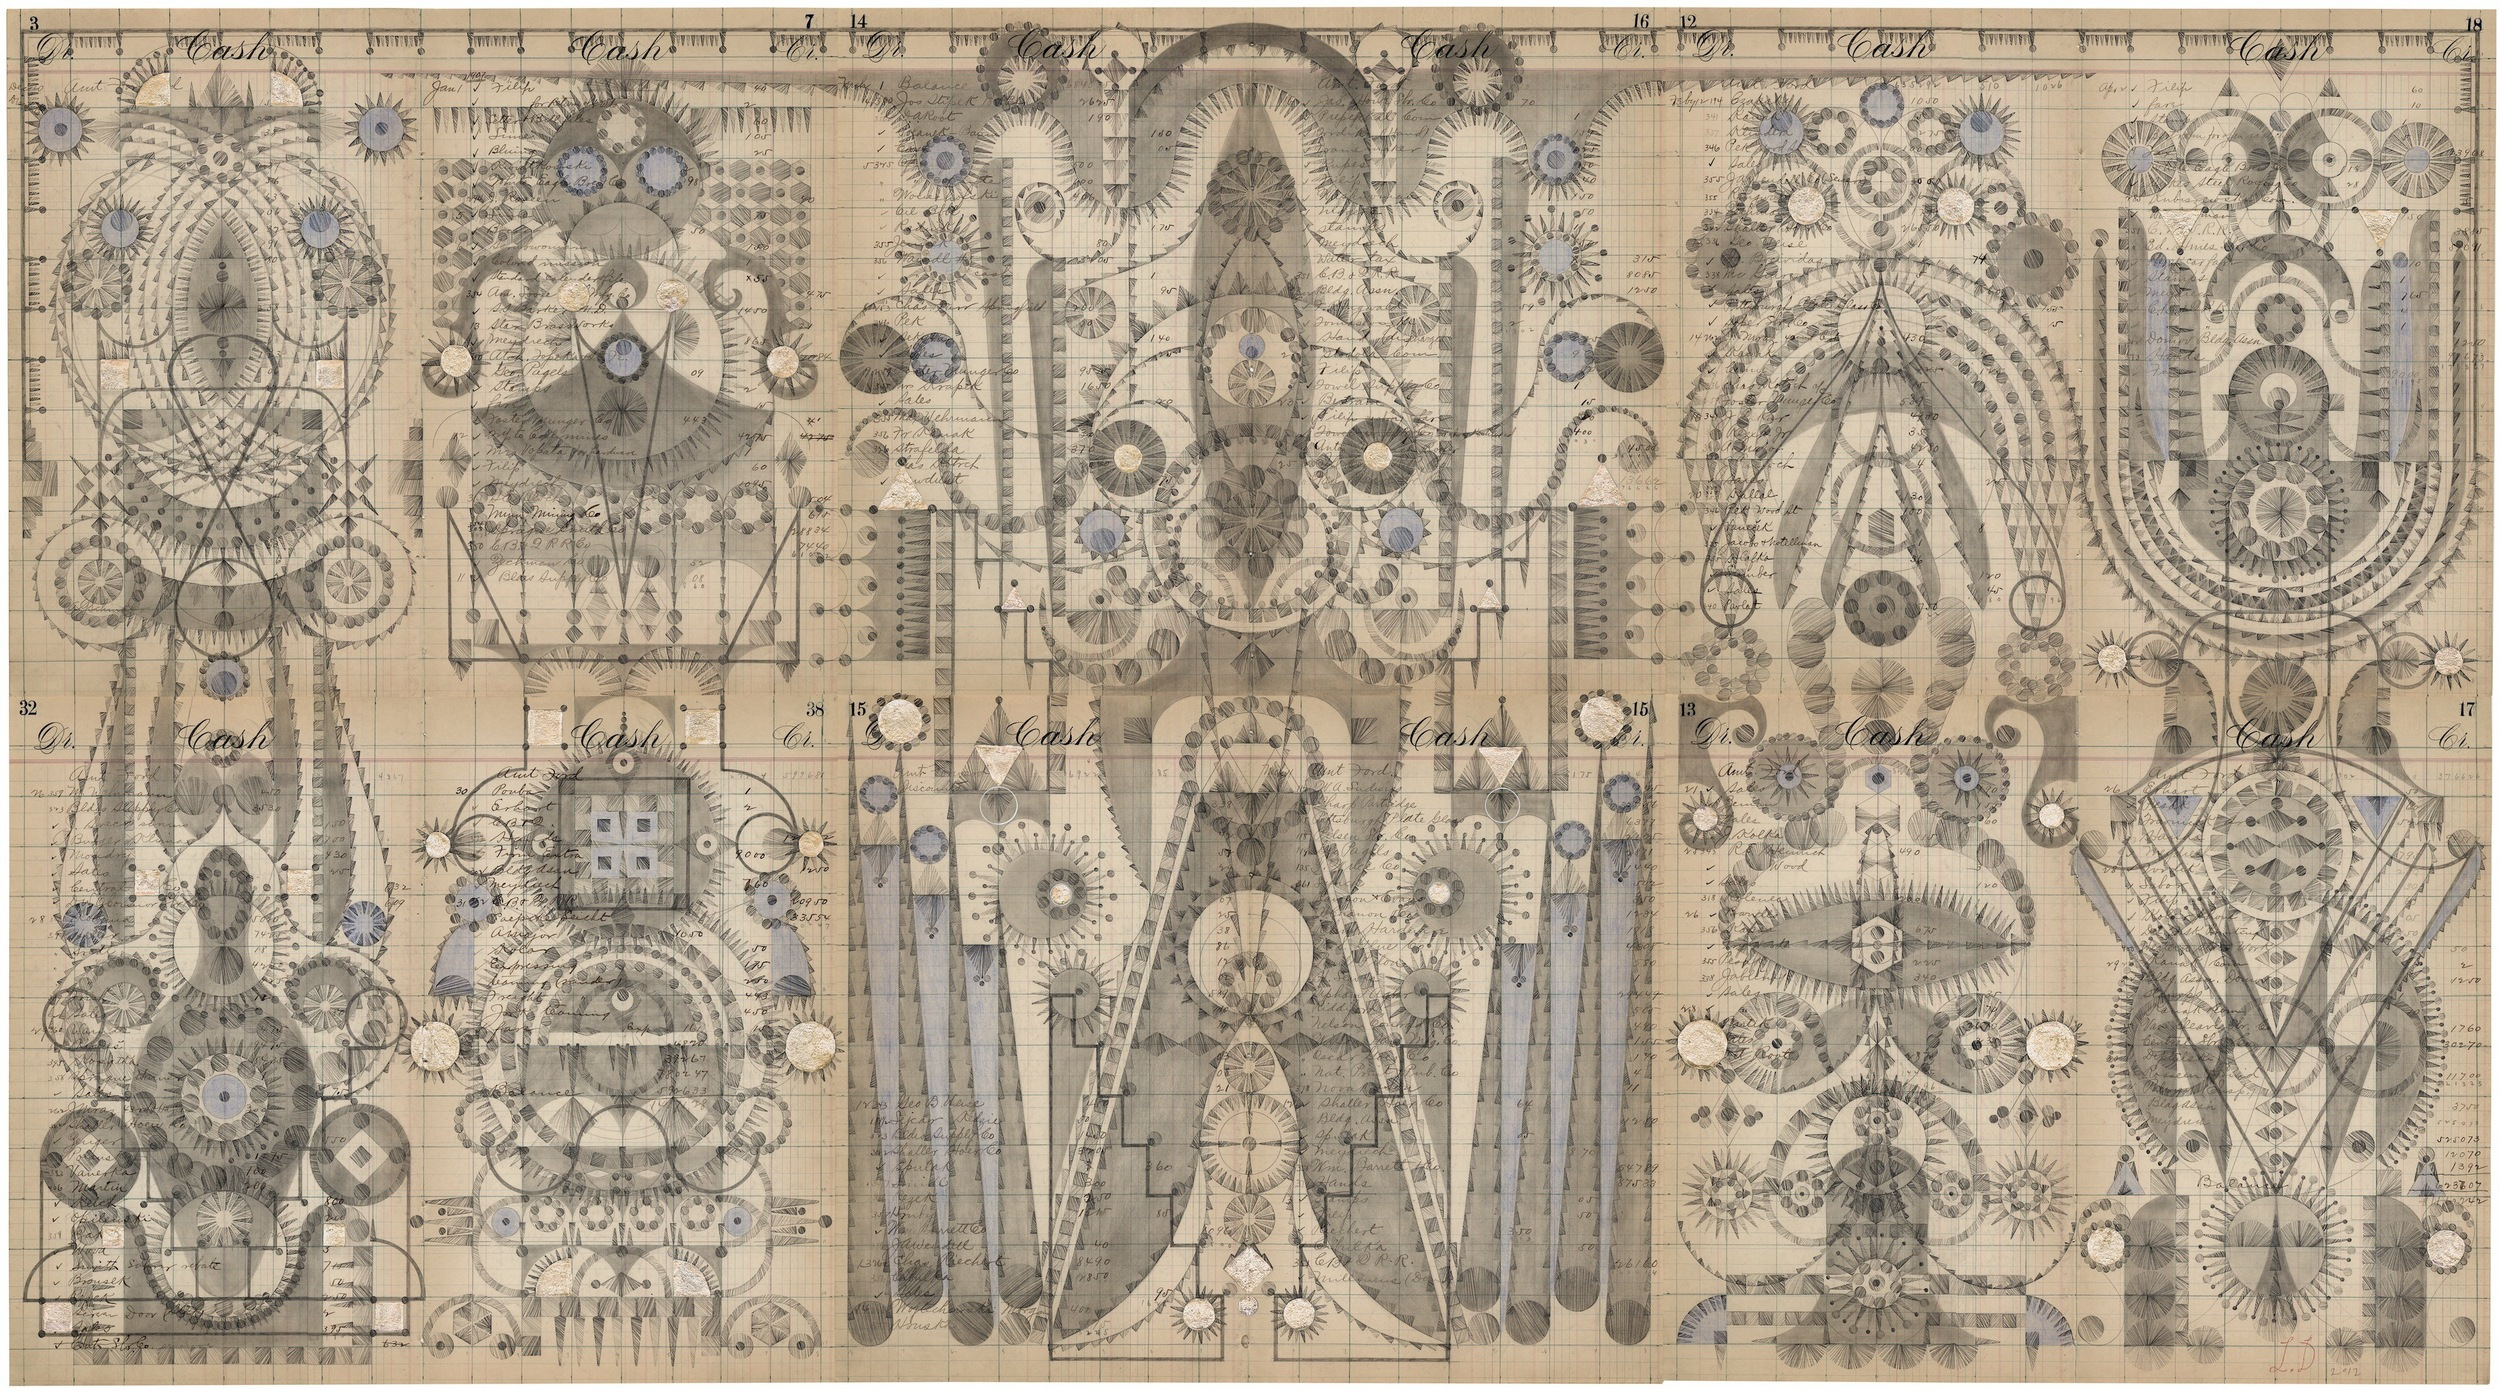 Inner Chamber.Colored Pencil and Graphite on Antique Ledger Book Pages 27.5 x 50 inches